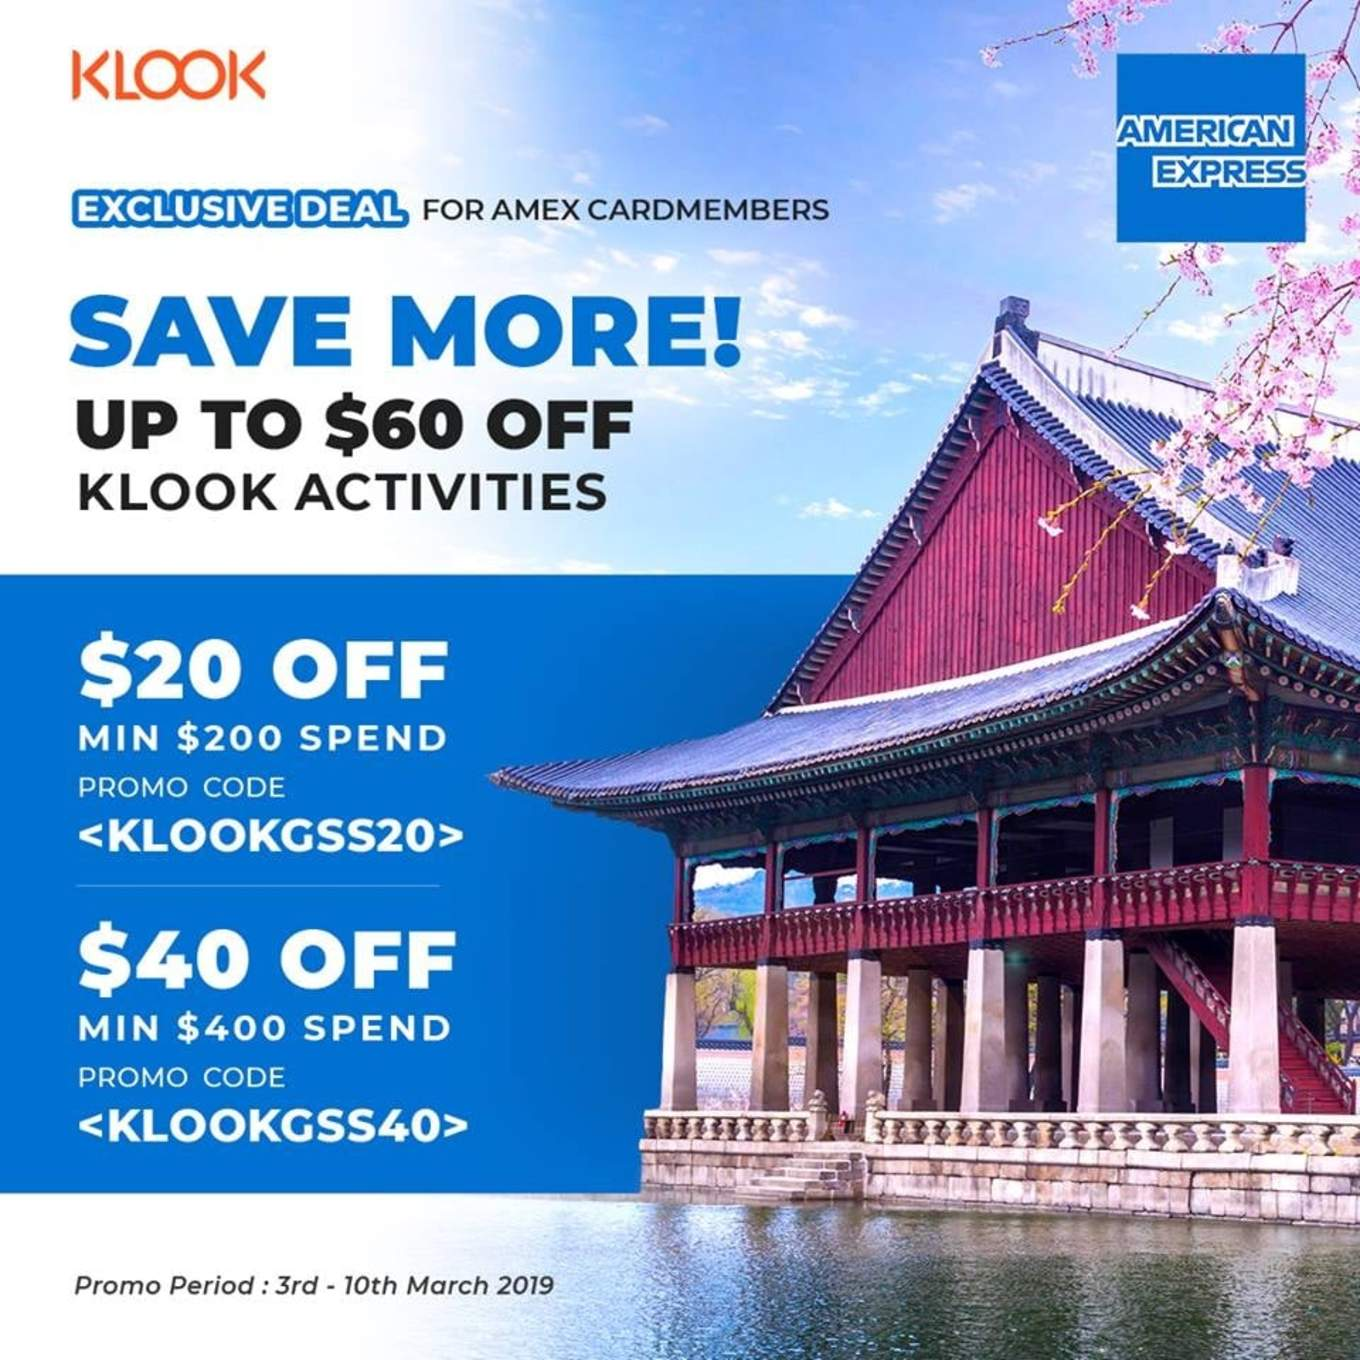 Klook Amex Exclusive Deal March